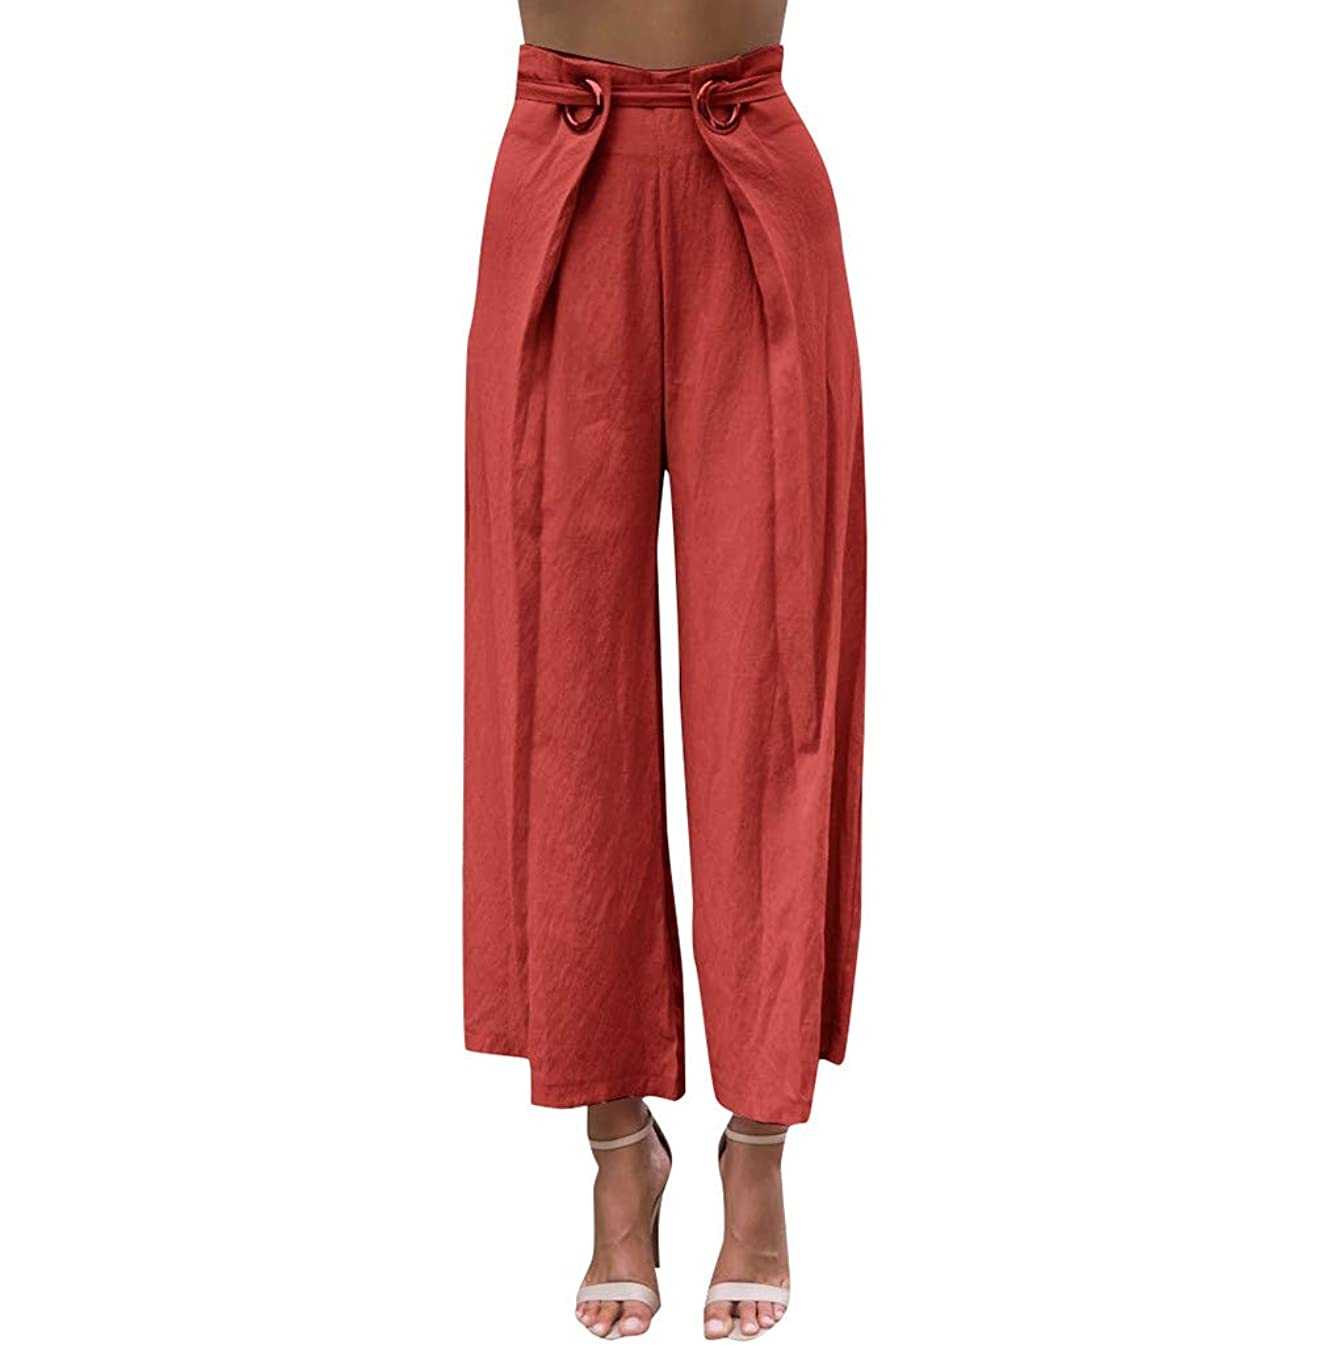 Women's Wide Leg Palazzo Pants Lace up Elastic Tie Waist Pant Soft Breathable Casual Loose Casual Trousers with Pockets